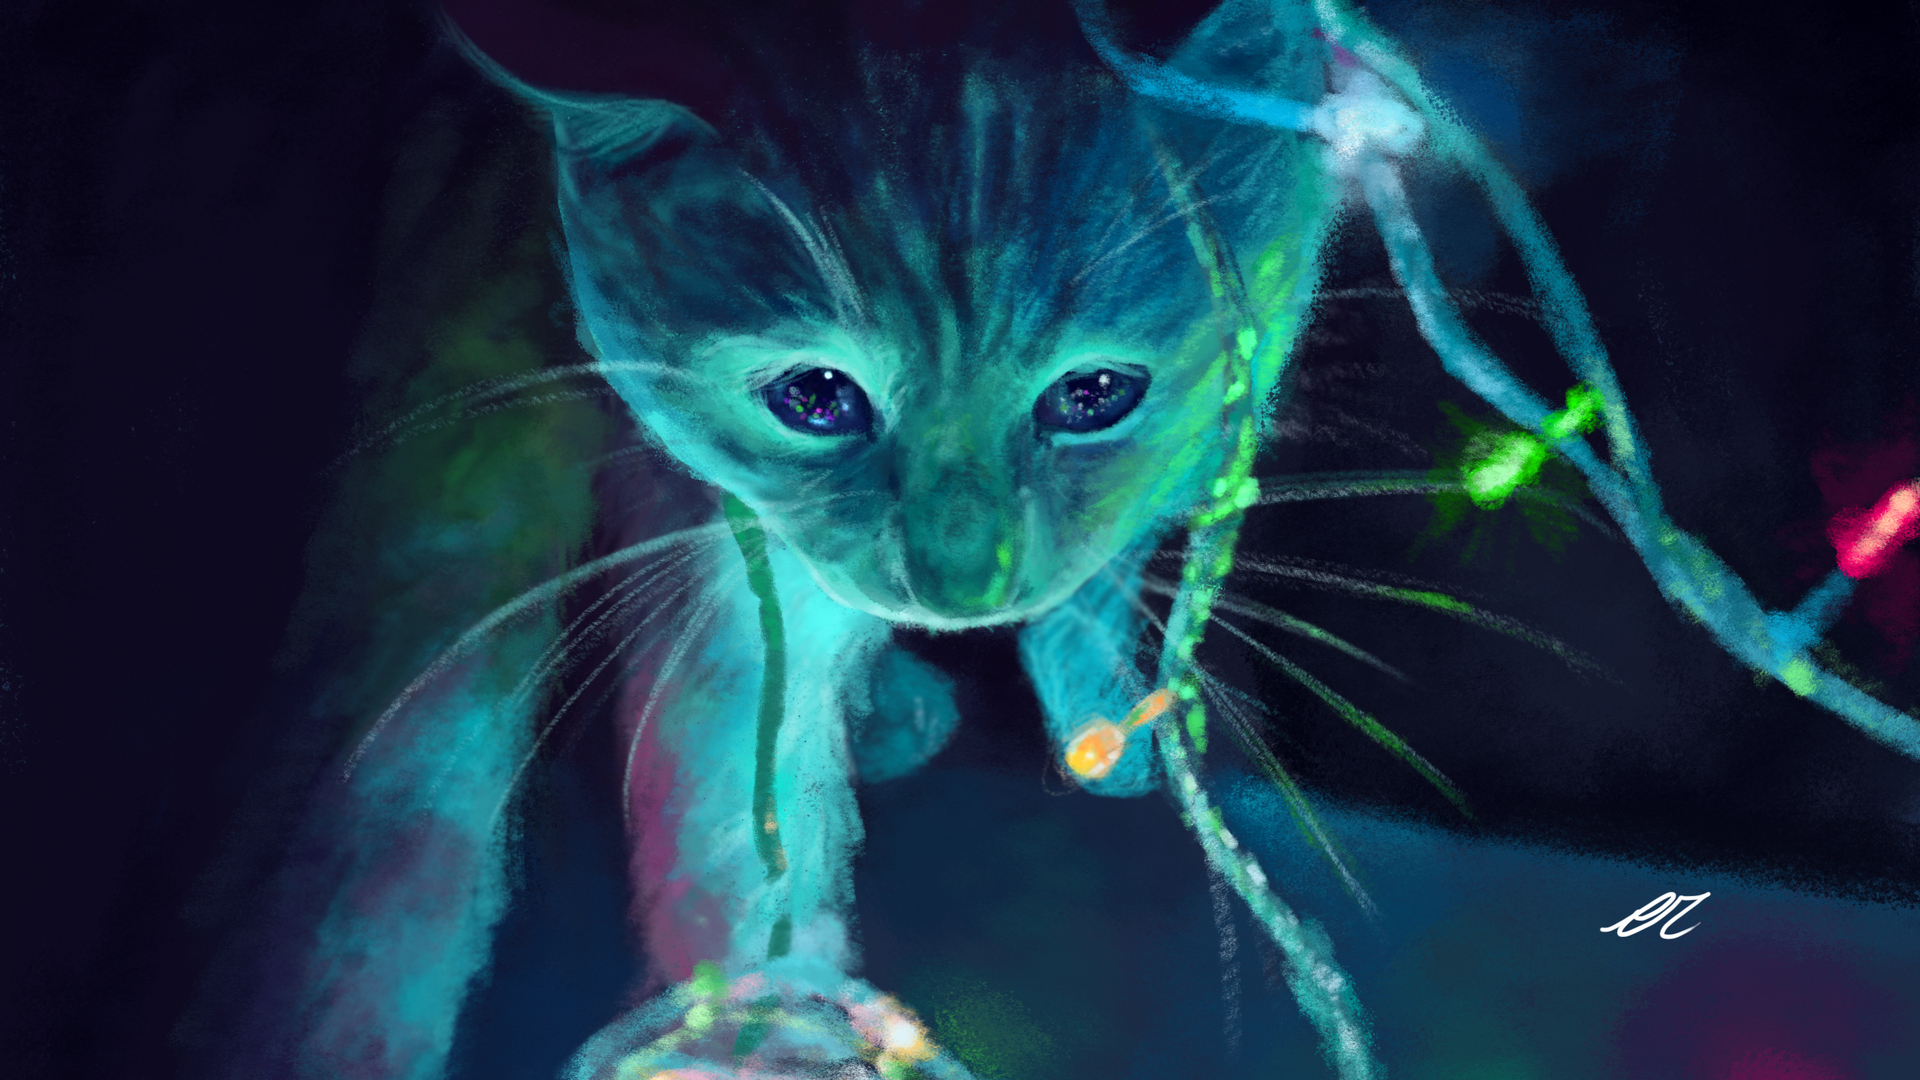 1920x1080 Wallpaper Cats Background Animation Images Hd Wallpapers